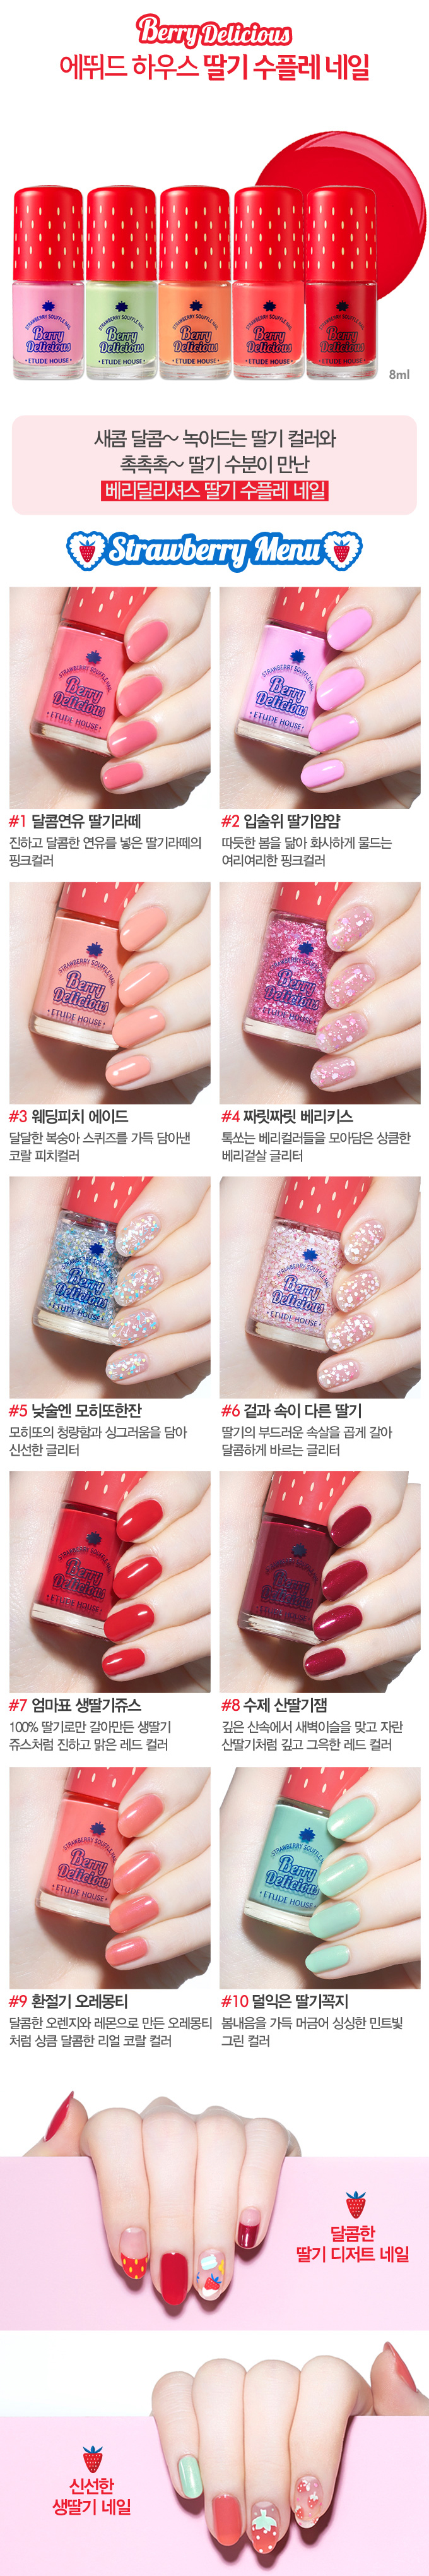 Berry Delicious Strawberry Souffle Nail